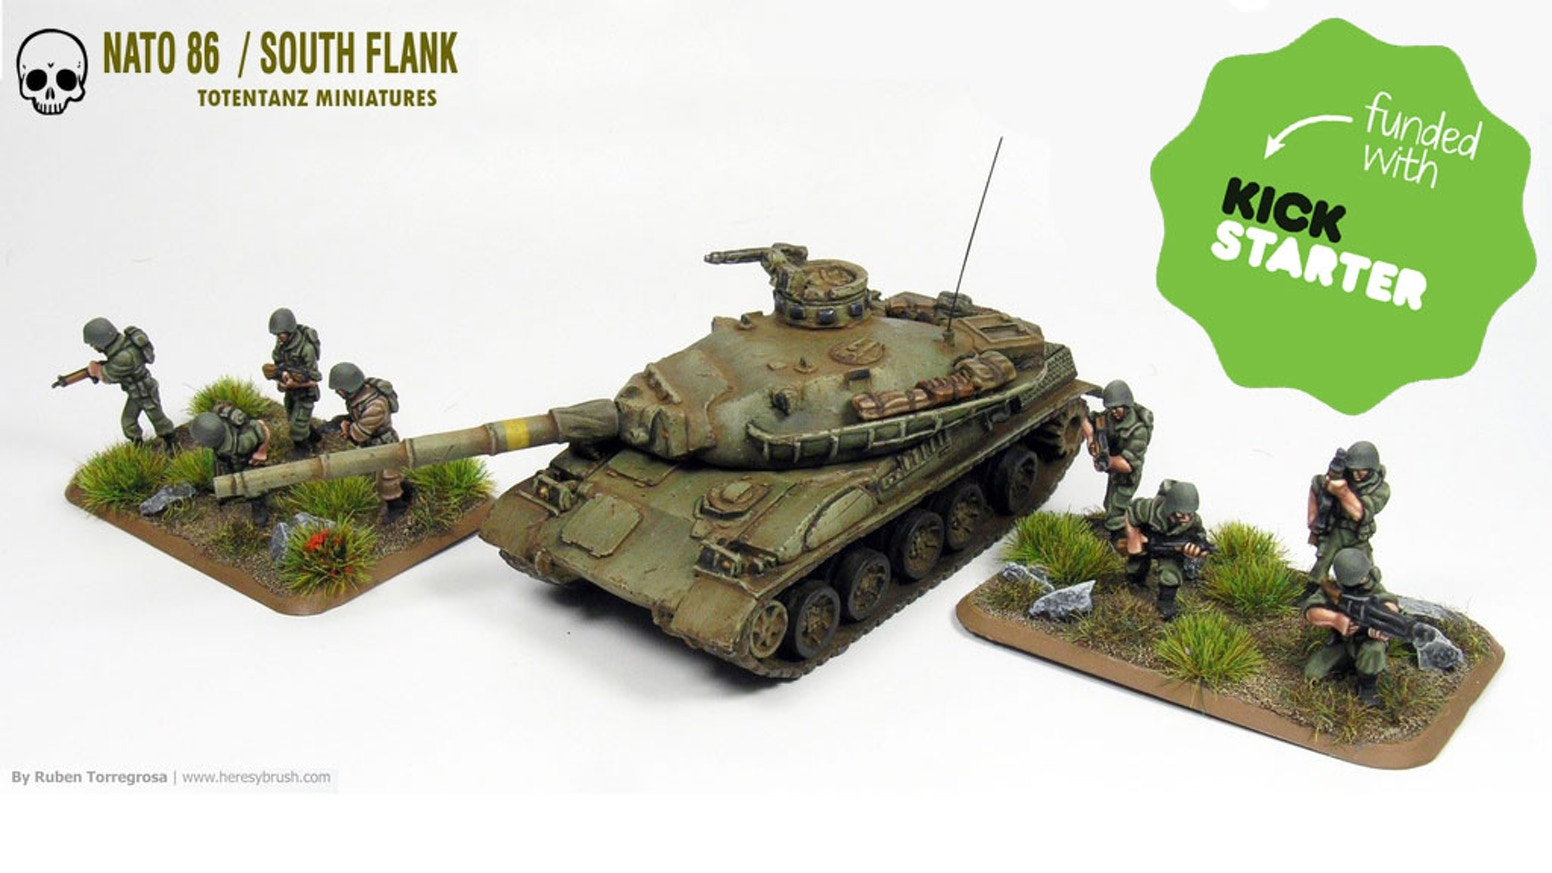 NATO 86 / SOUTH FLANK: SPANISH ARMY 15MM WARGAME MINIATURES